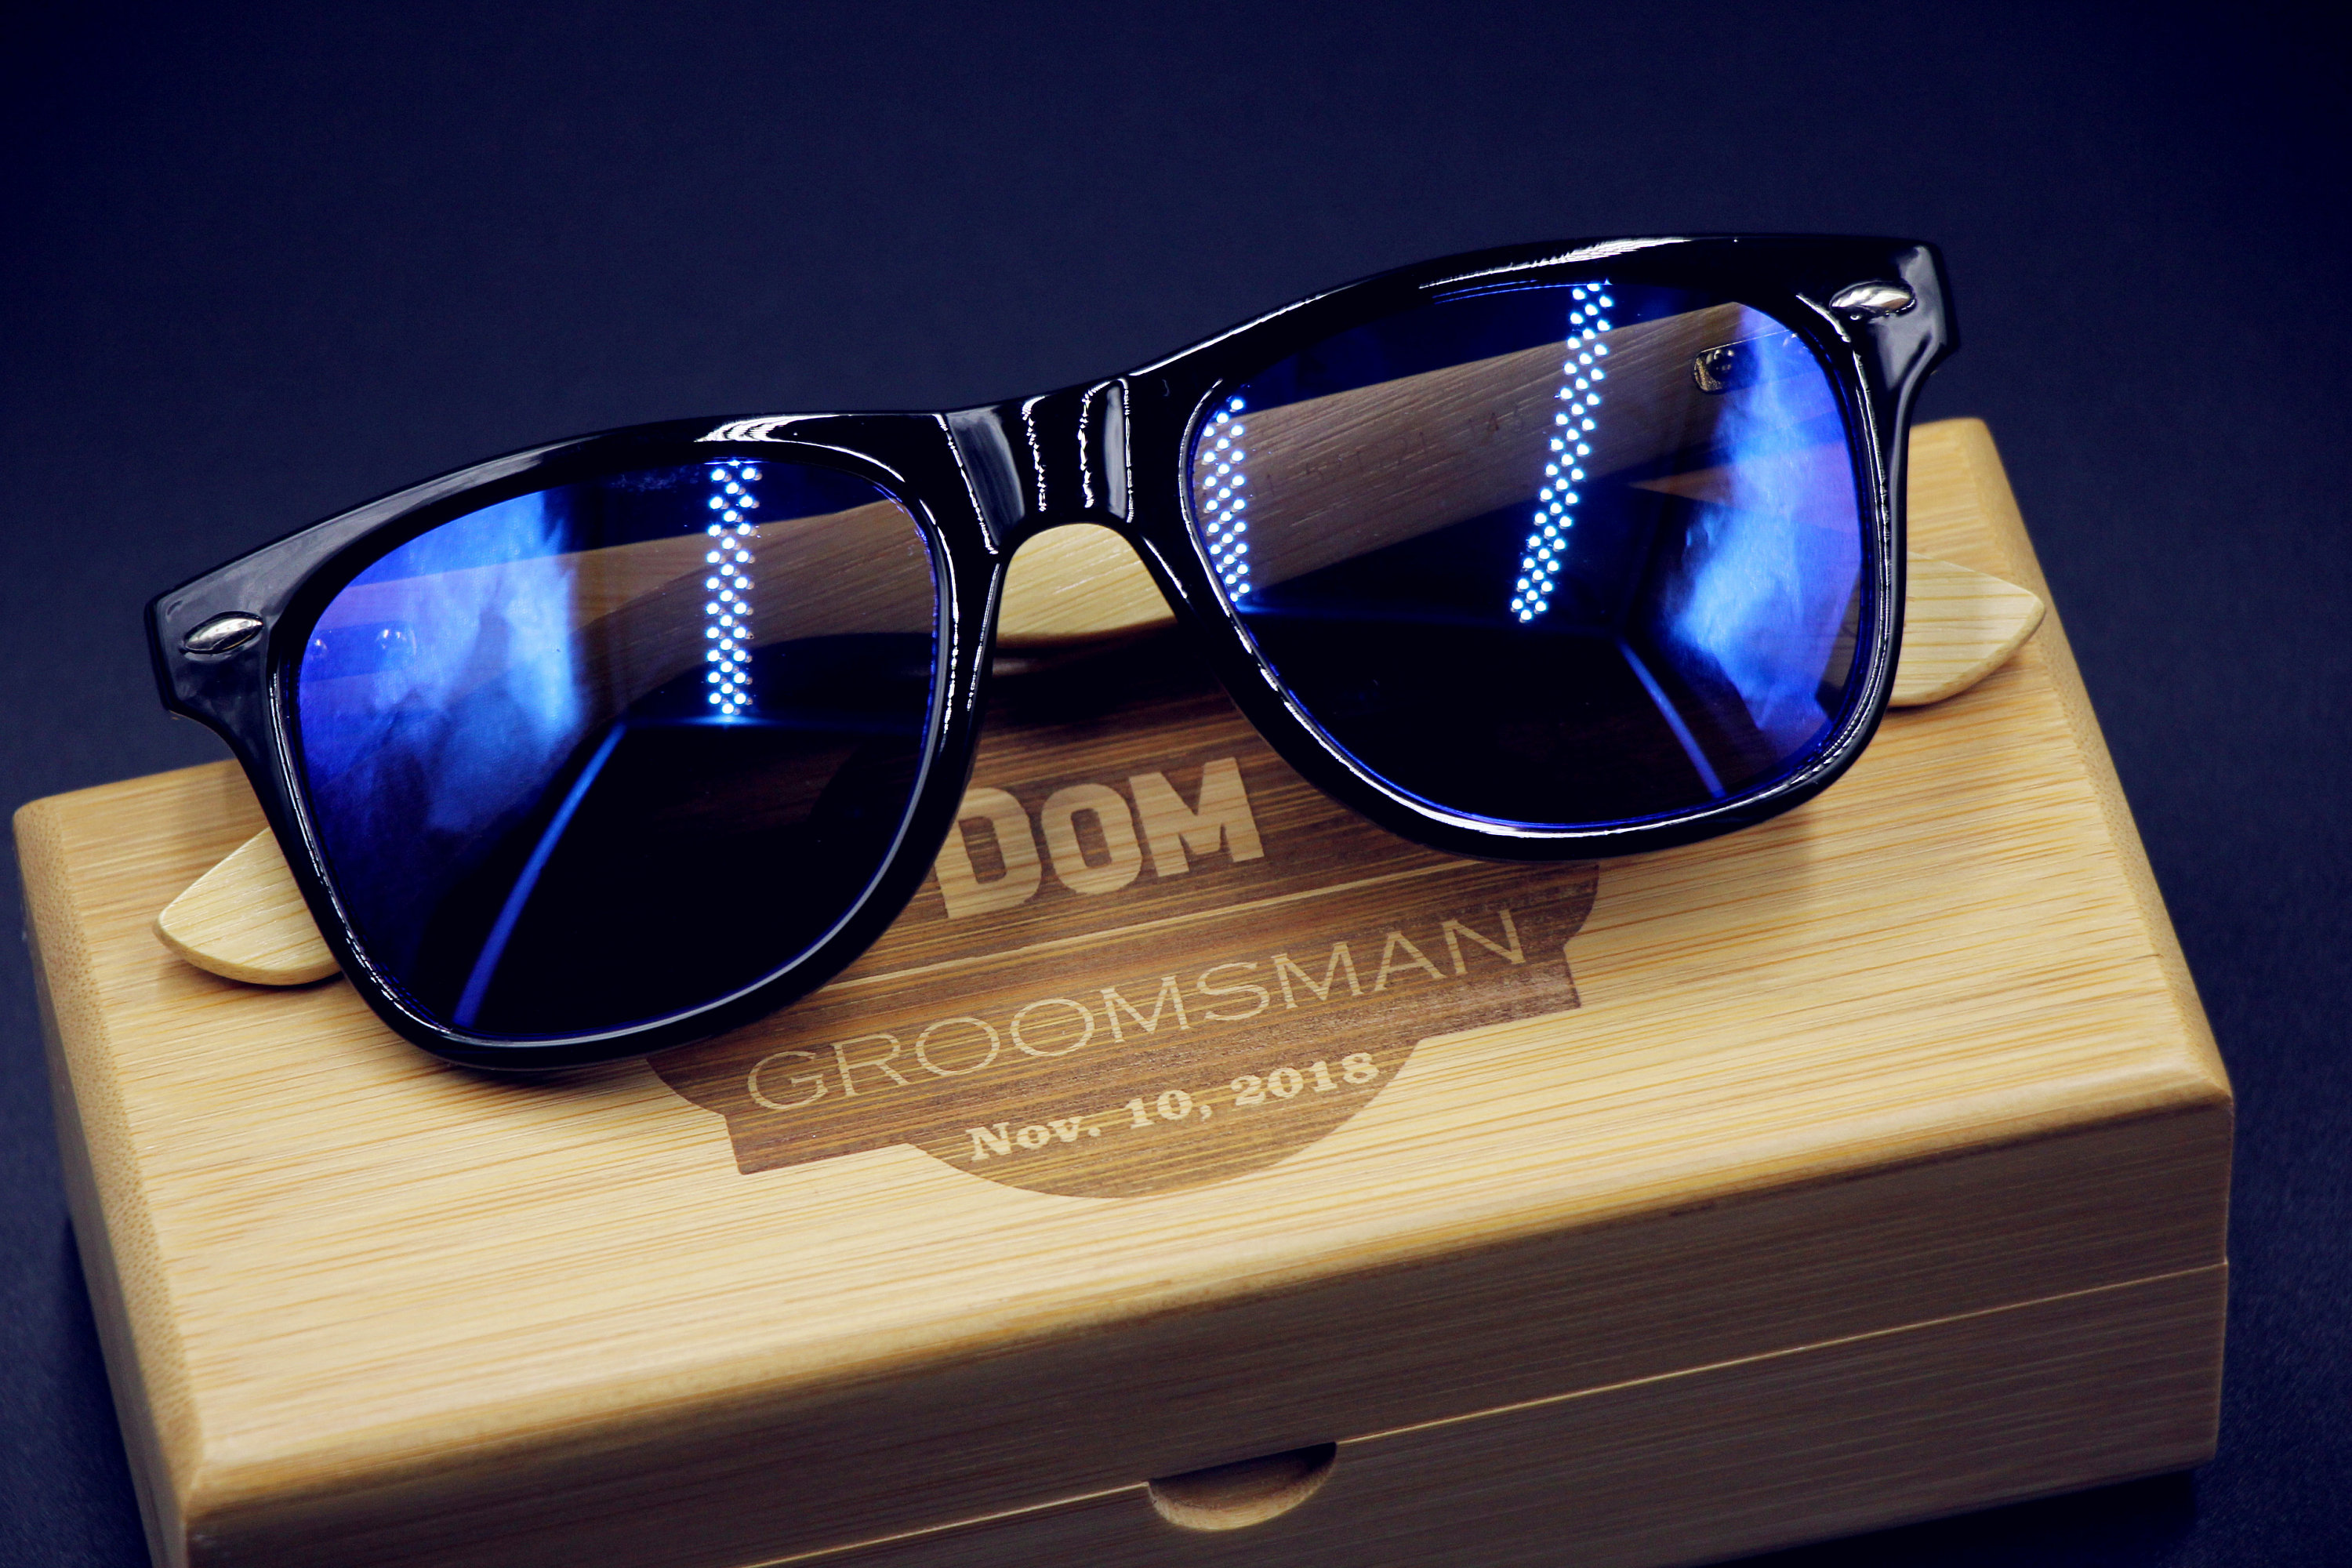 Groom Gift Groomsmen Gift Engraved Sunglasses Bachelor Party Gift Wedding Gift Personalized Sunglasses Custom Sunglasses Best Man Gift From